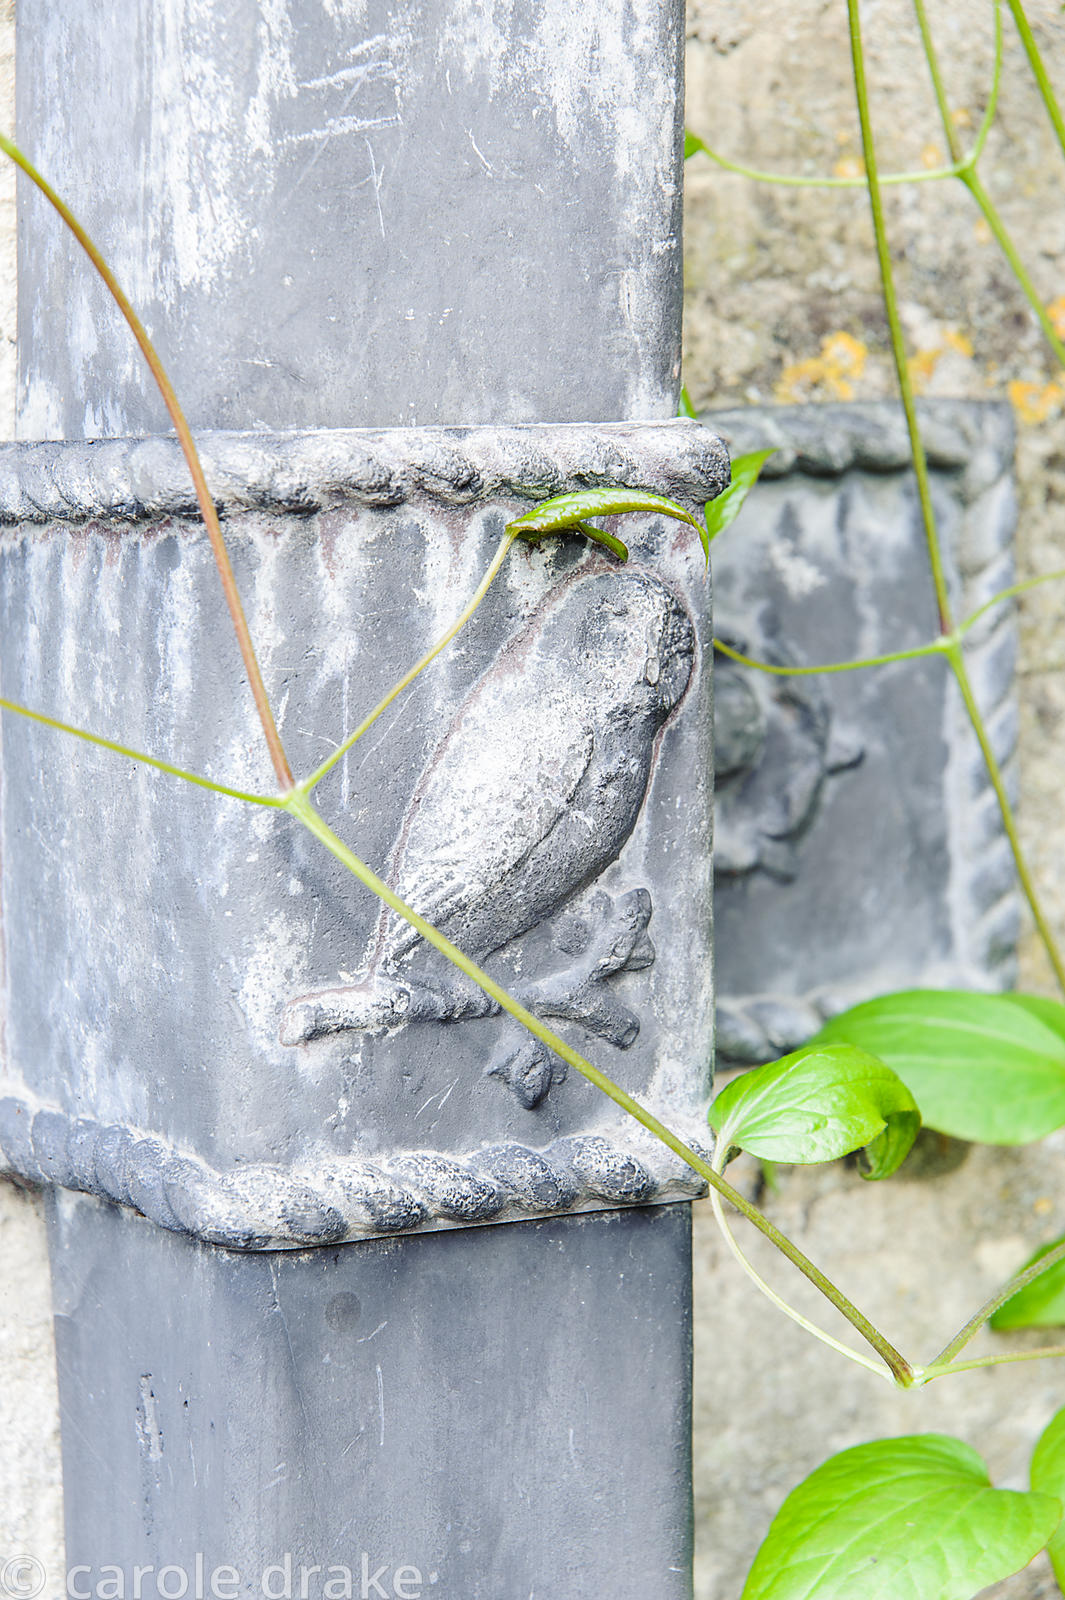 Decorative drain pipe with owl image. Rodmarton Manor, Rodmarton, Tetbury, Glos, UK